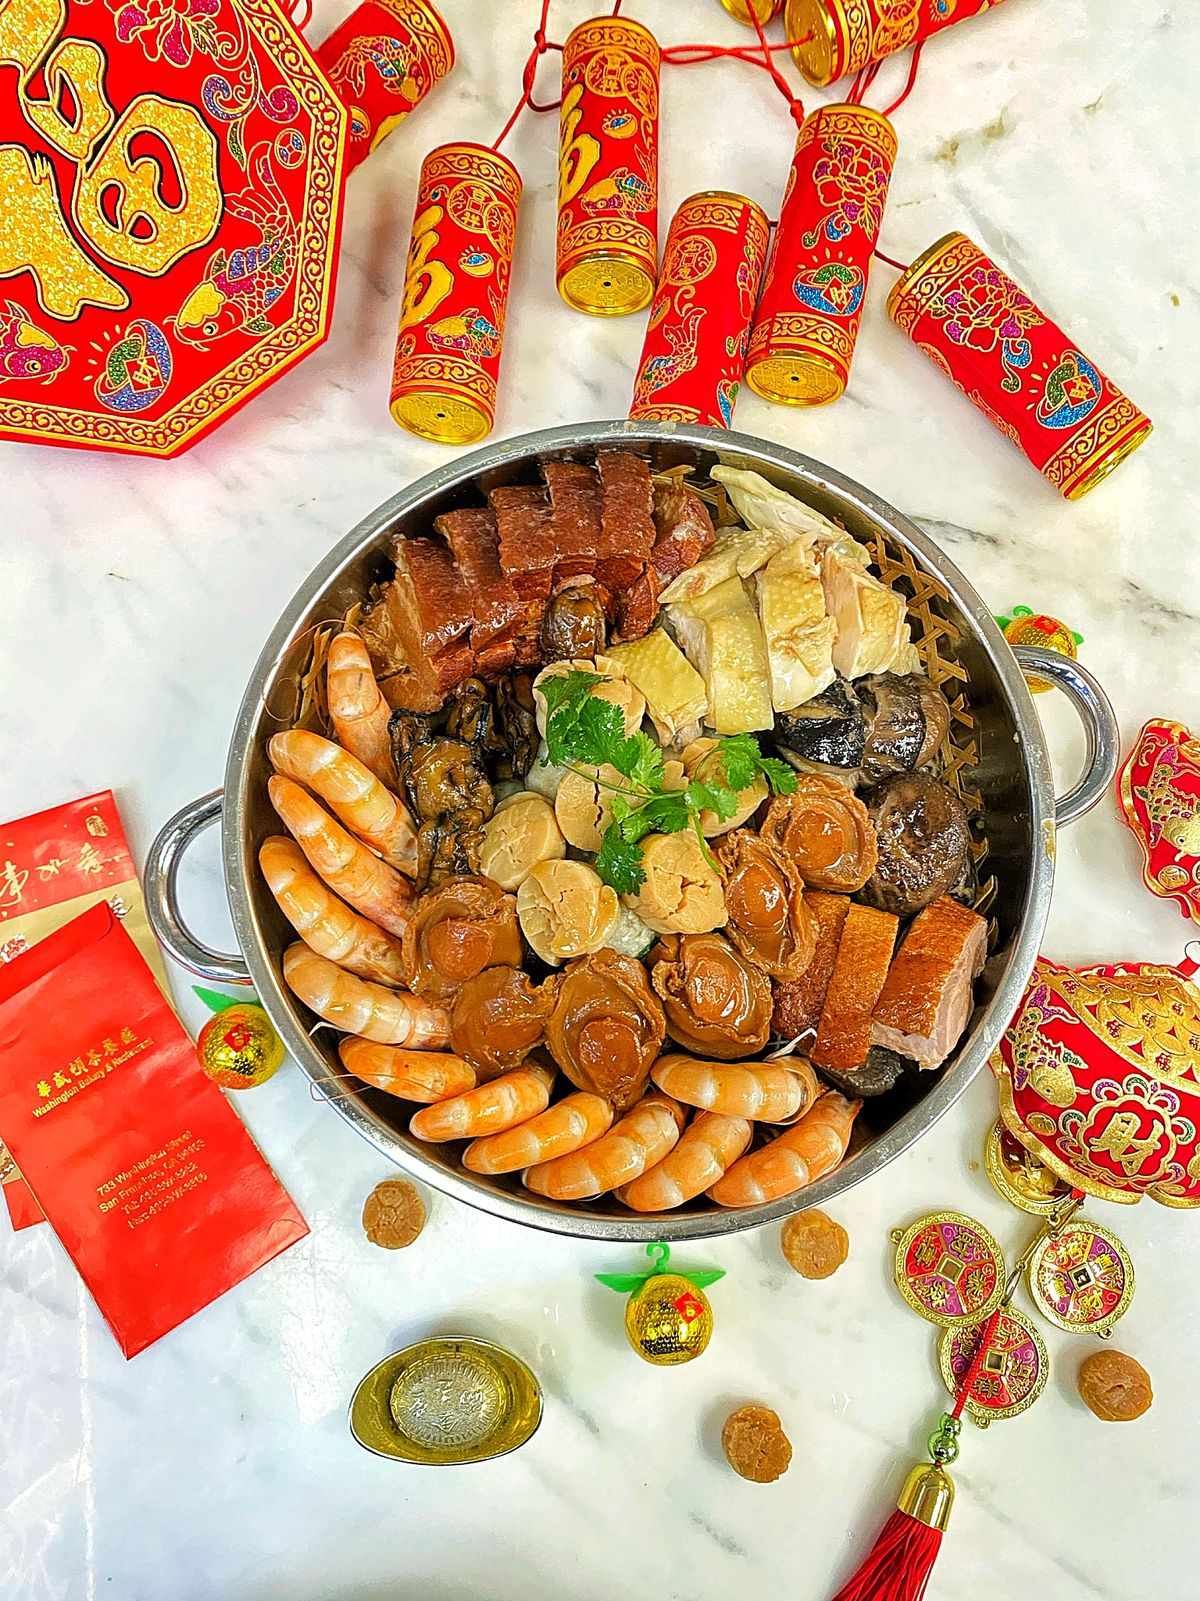 """A celebratory one-pot """"poon choi"""" Lunar New Year meal — a pot loaded with shrimp, abalone, pork belly, and more —with red envelopes and firecrackers scattered alongside on the table"""